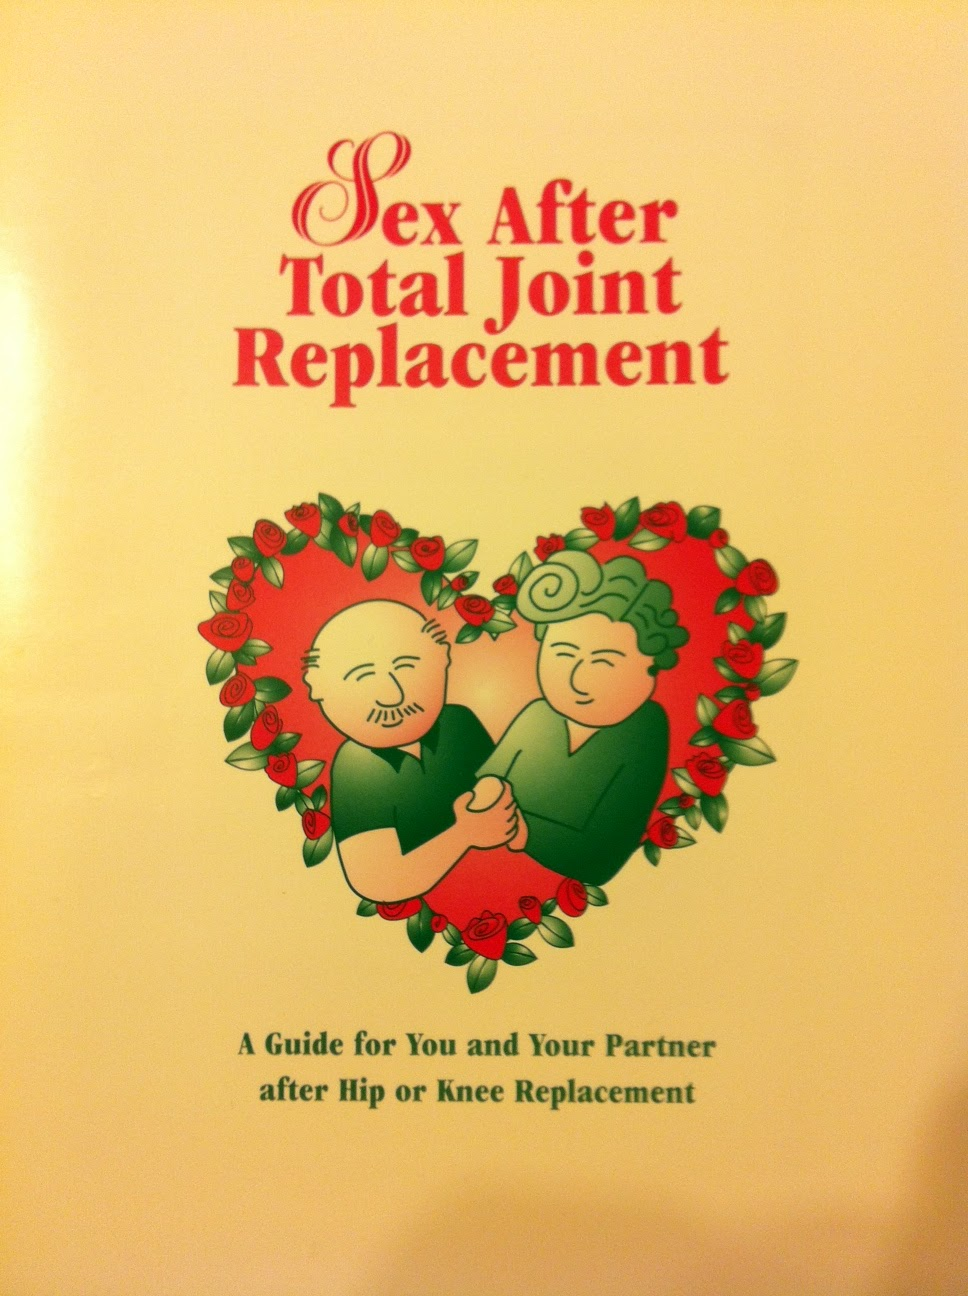 Sex-After-Total-Joint-Replacement-Book-Cover